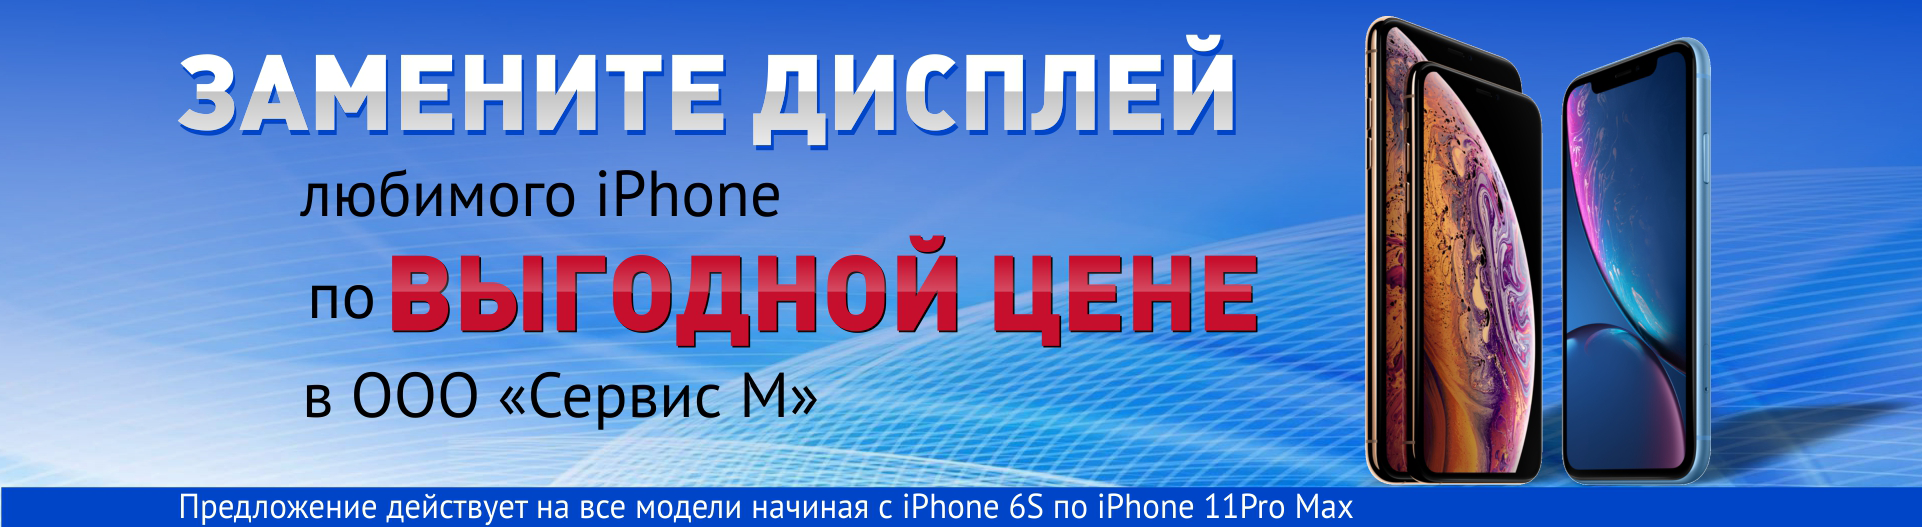 banner_iphone_servicem.png